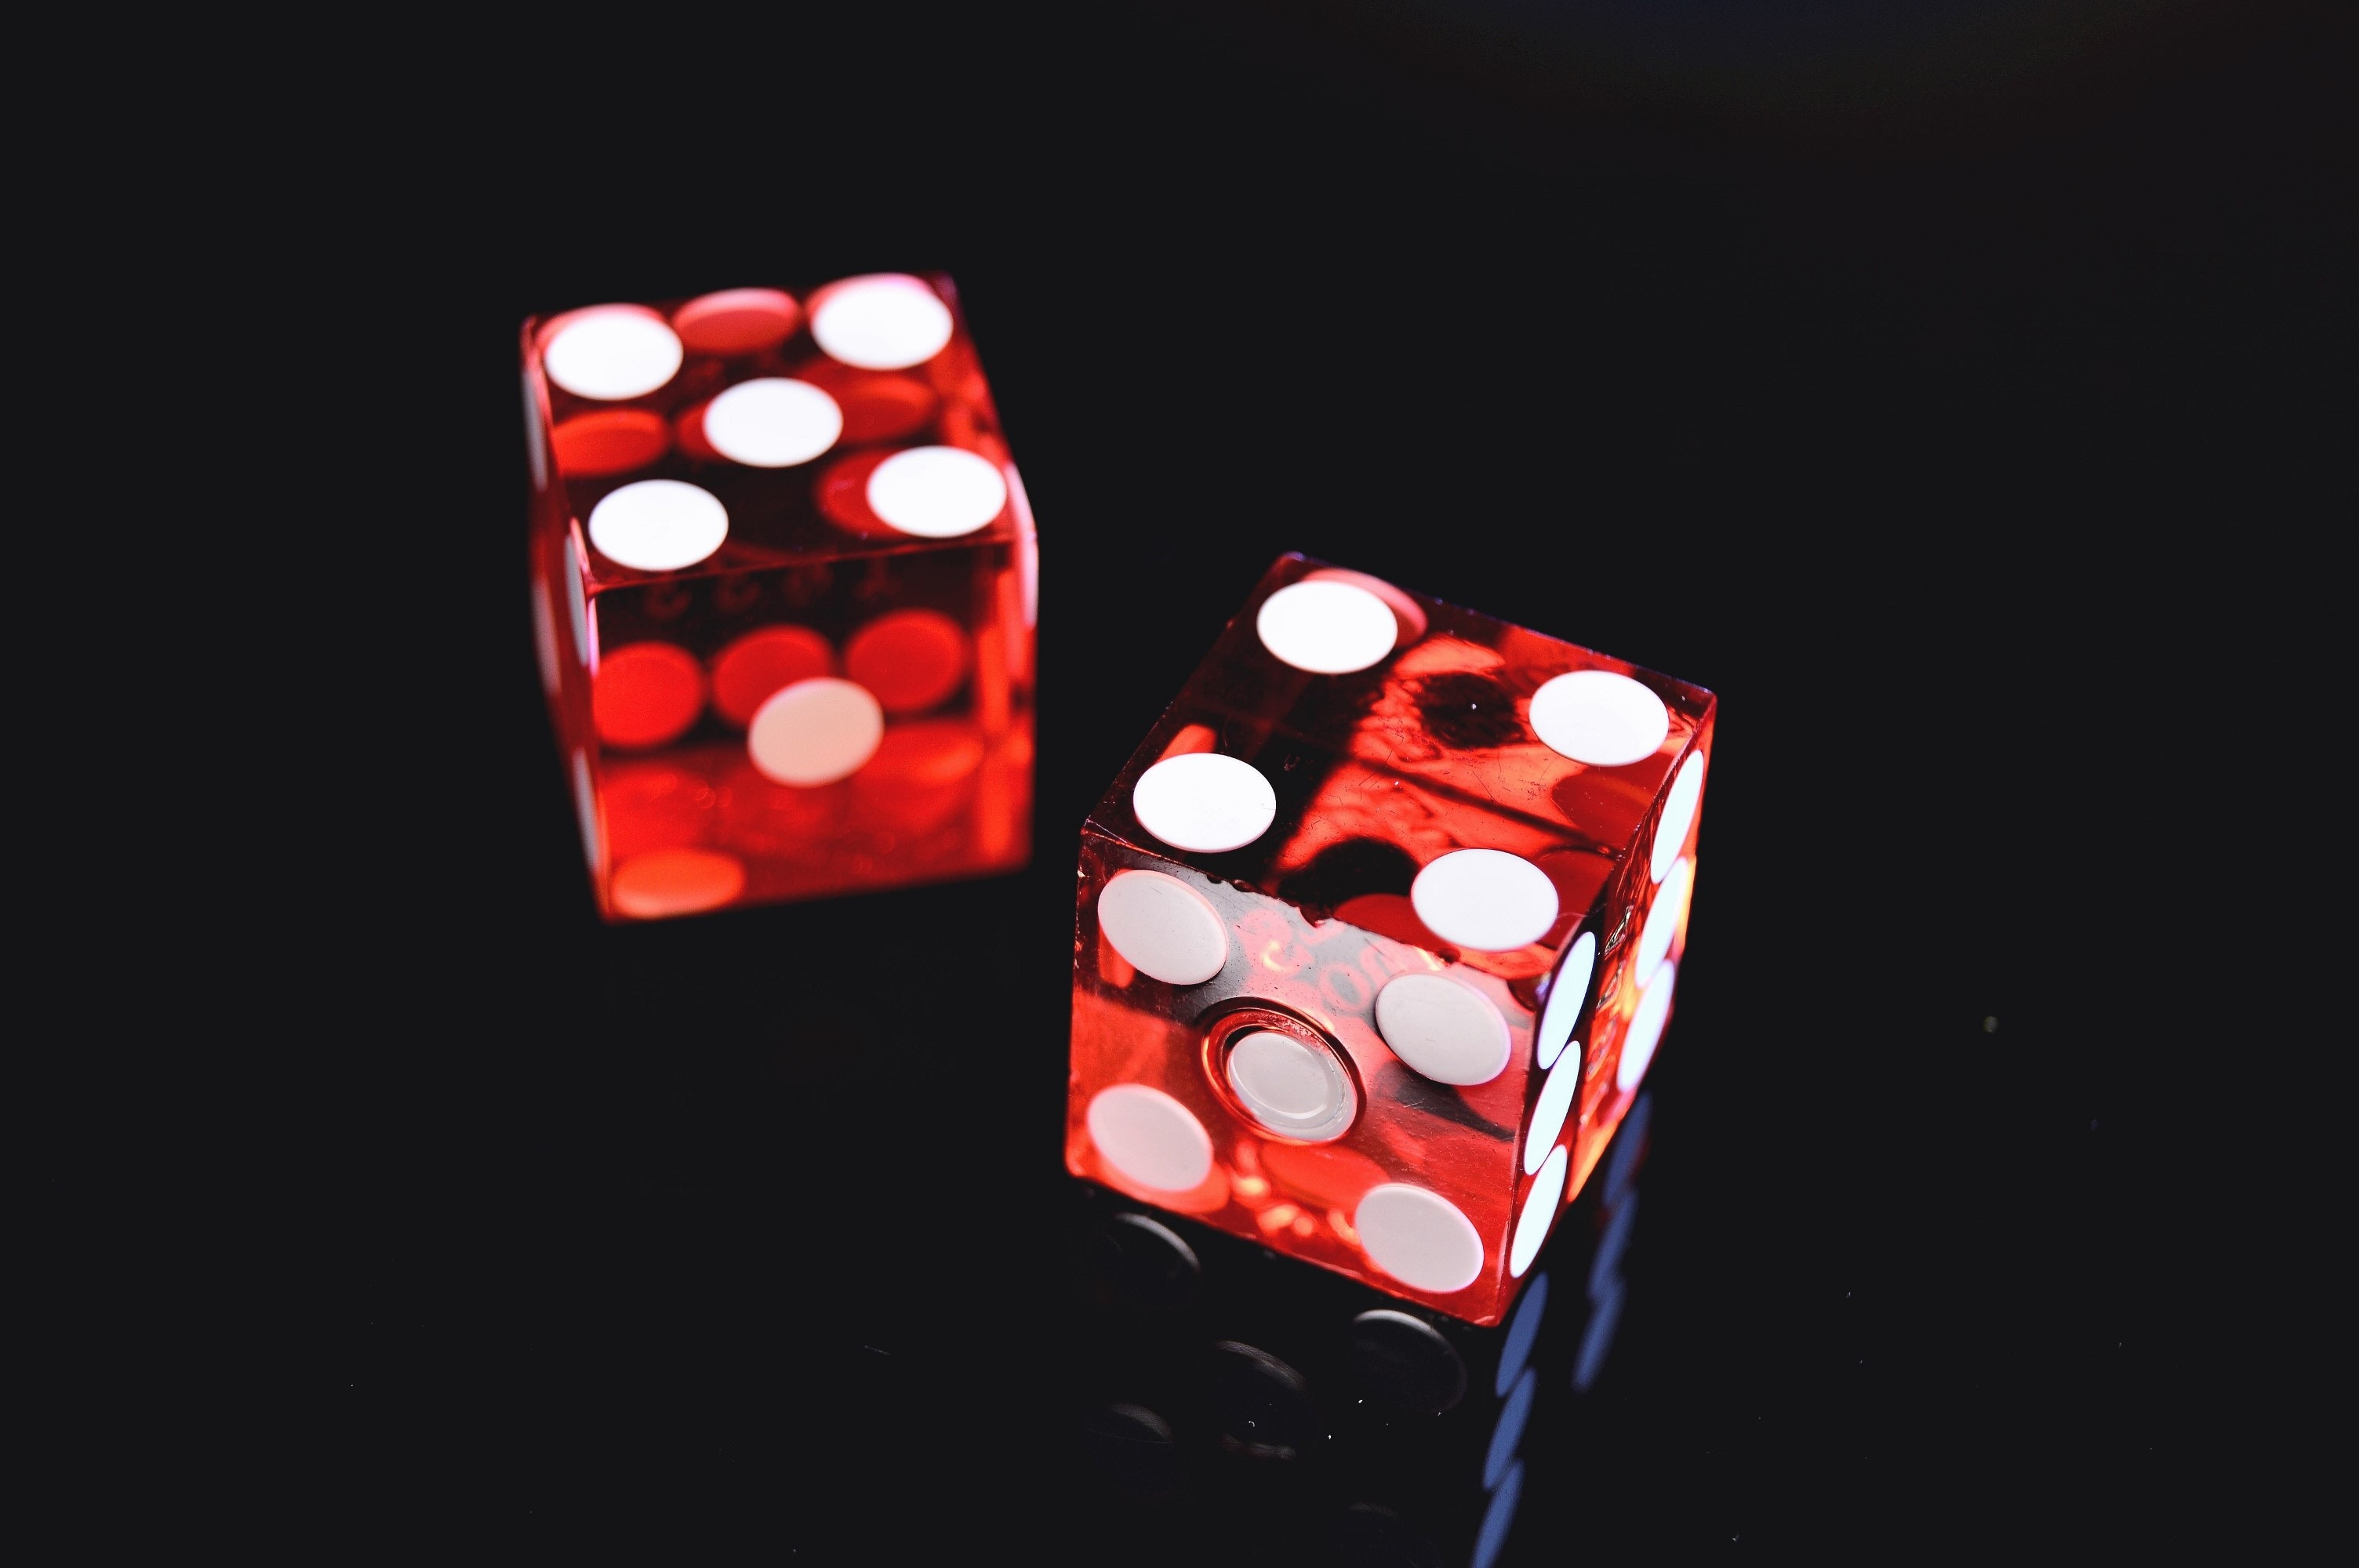 Closeup Photo of Two Red Dices Showing 4 and 5, Black background, Las Vegas, Symbol, Sweden, HQ Photo